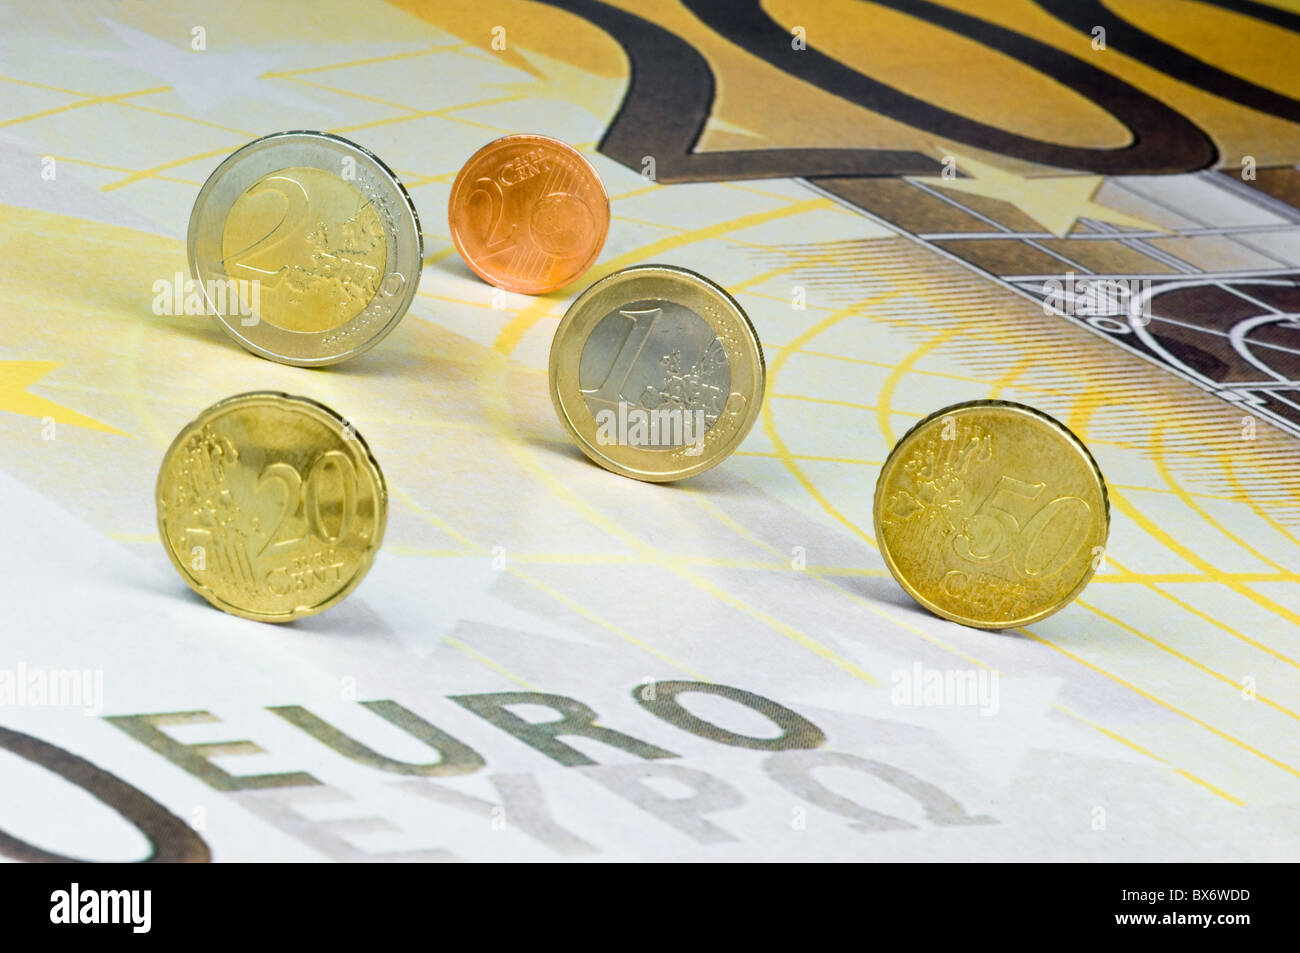 European Hardcash Stock Photo